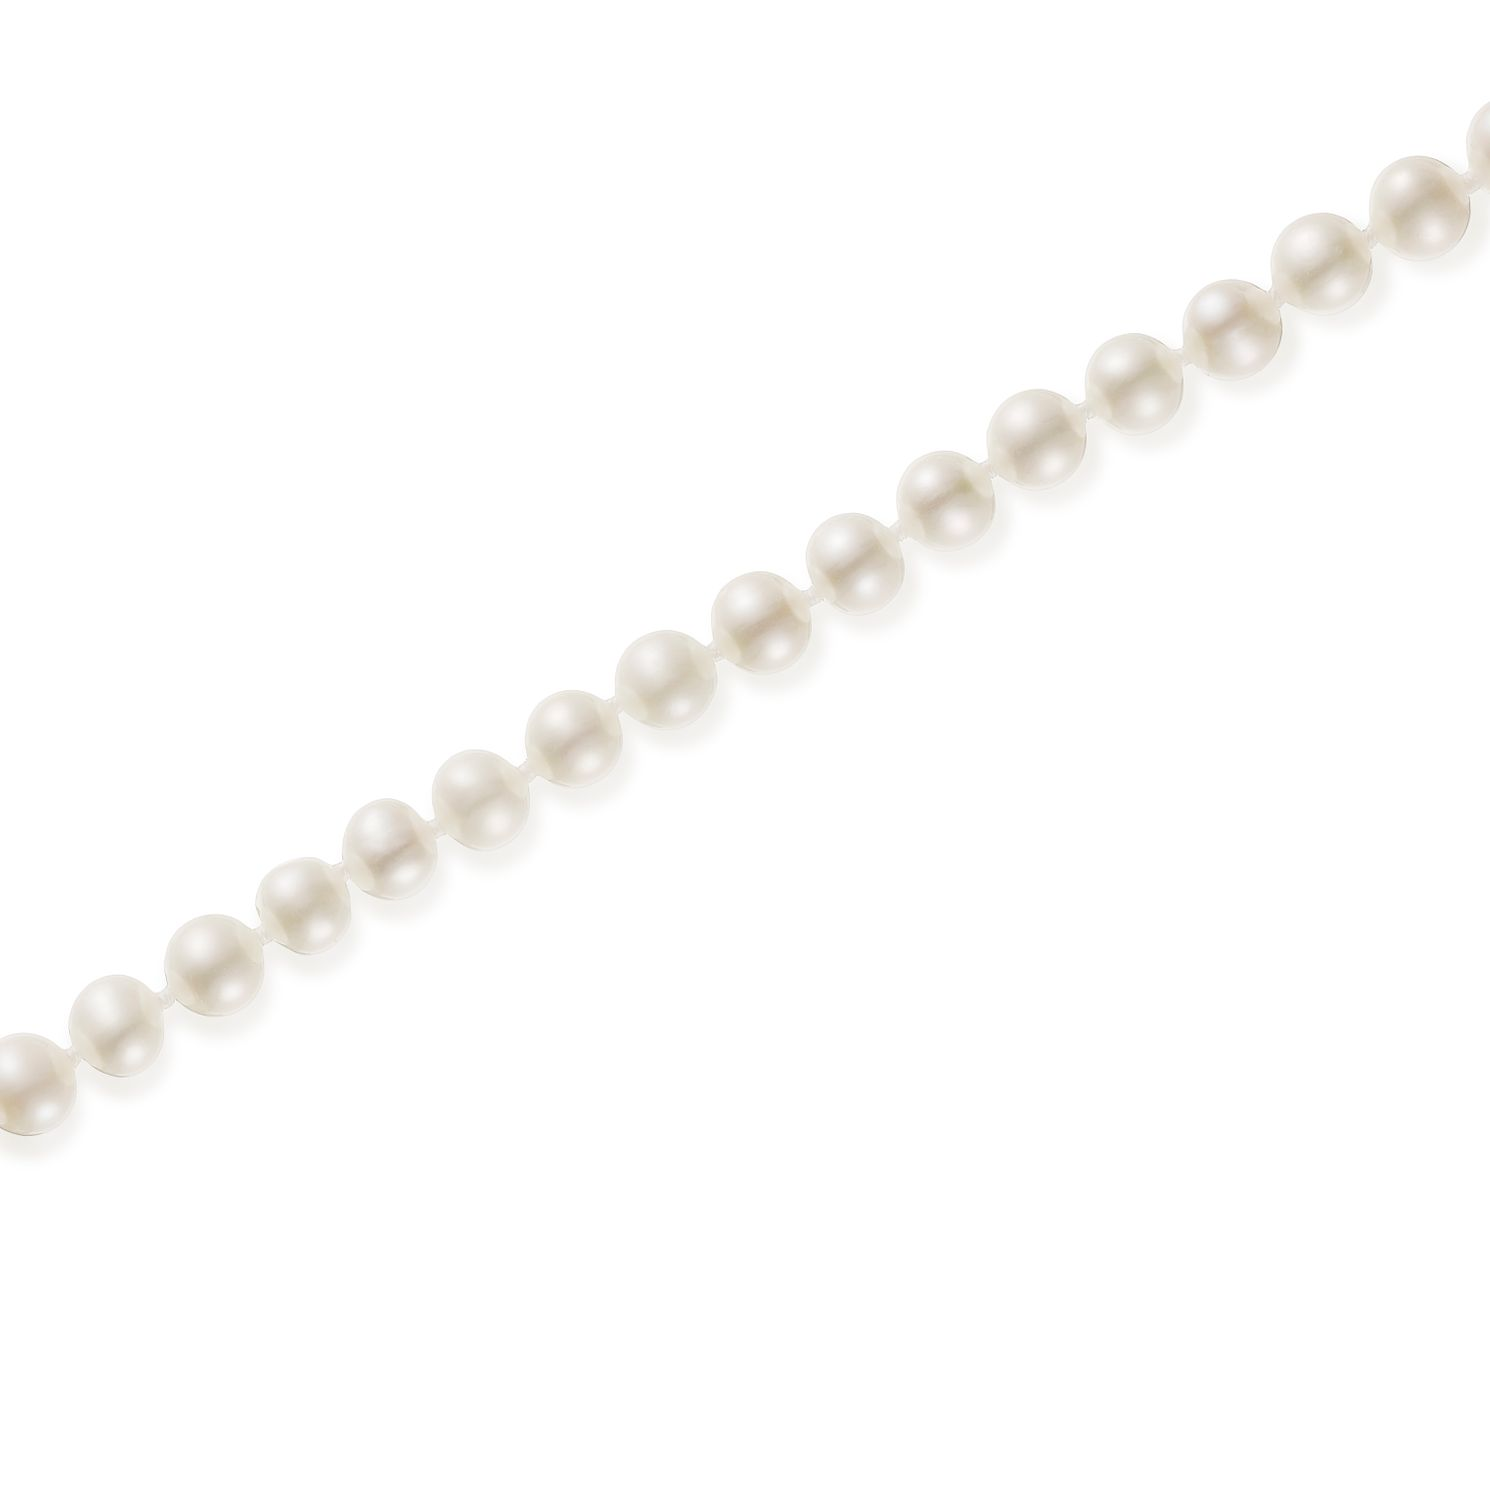 9ct Gold 5mm Cultured Freshwater Pearl 30 inches Necklace - Product number 5819156